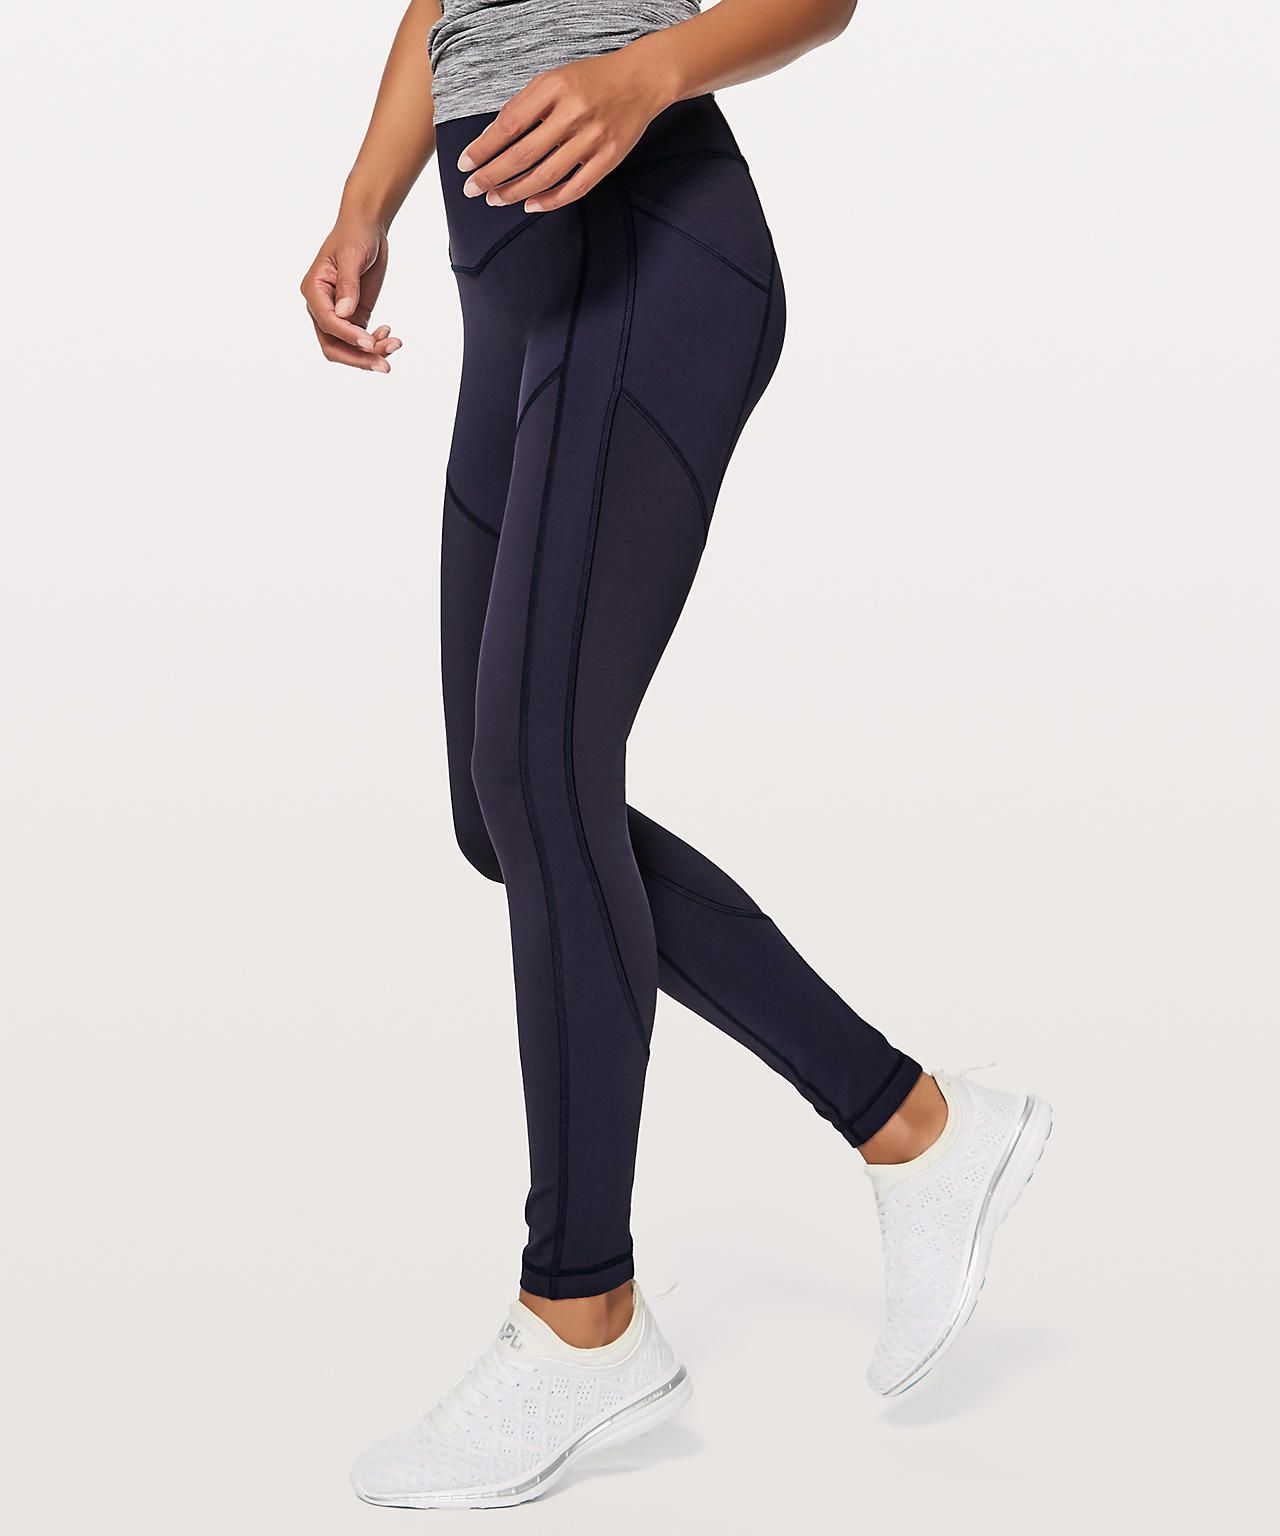 74679f88e0f32 Lululemon- All The Right Places Pant II 28